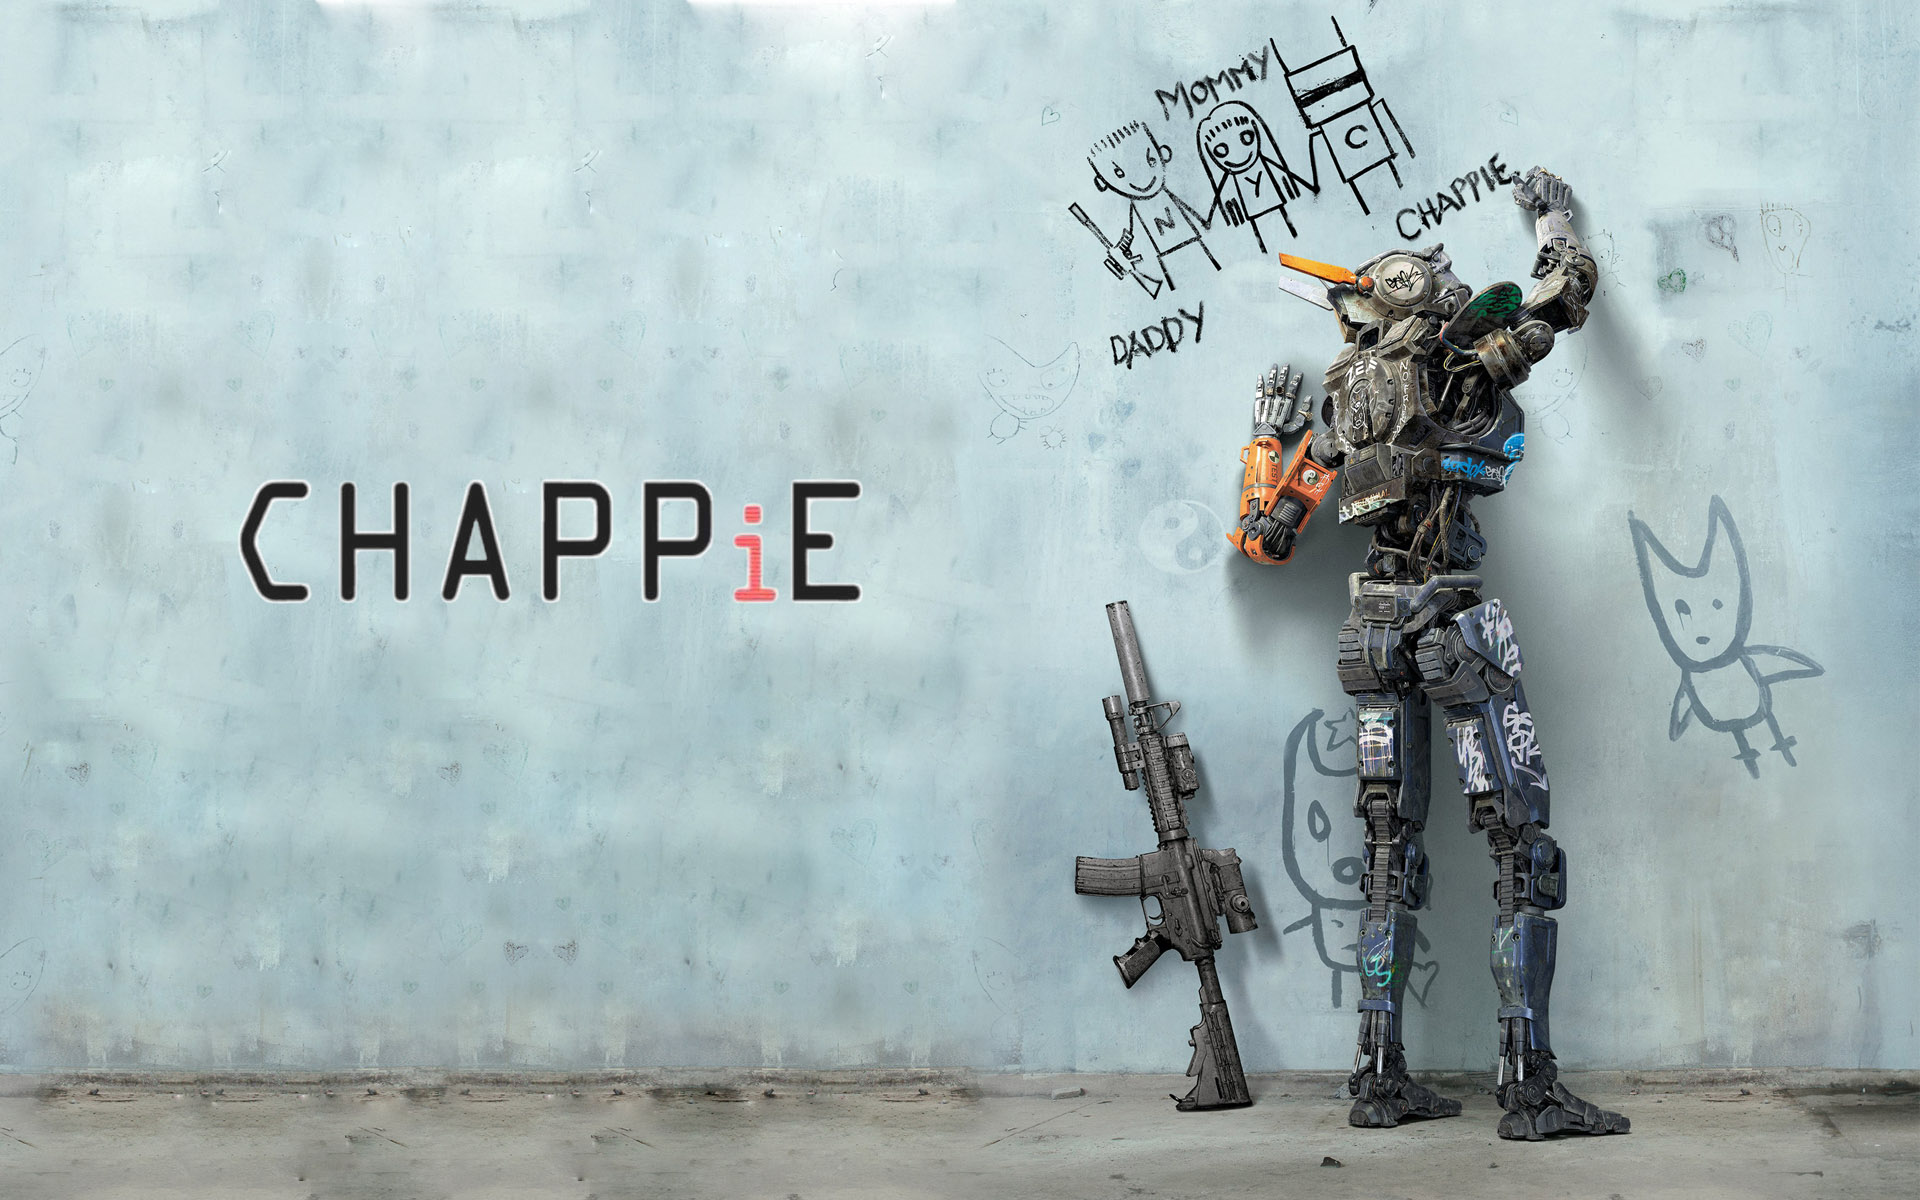 'Chappie' chips at society's shortcomings